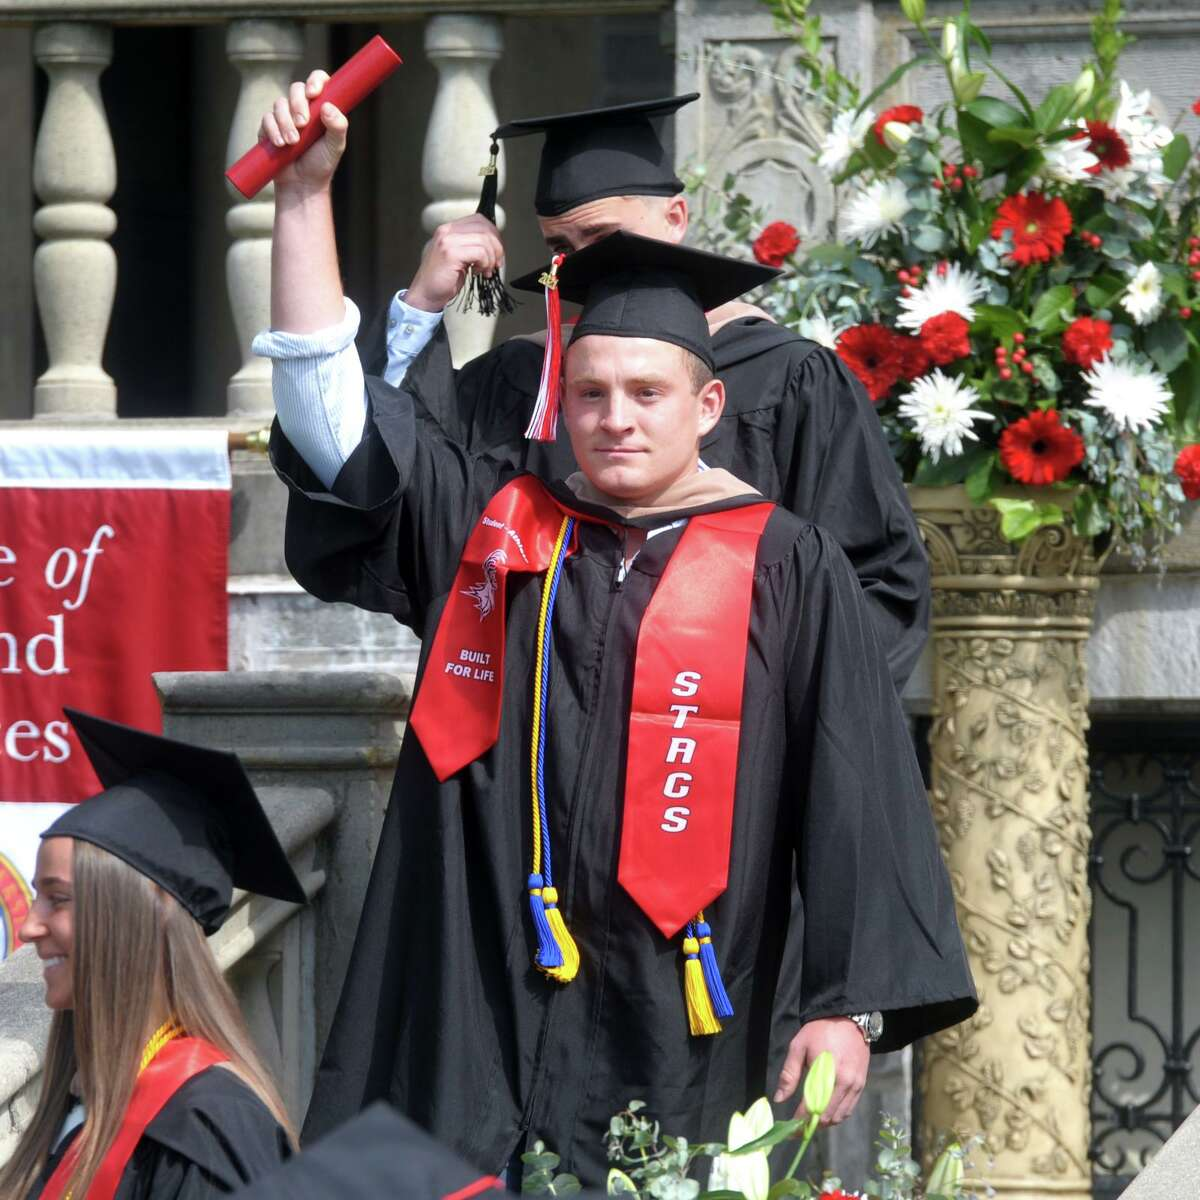 Taylor Strough gestures to the crowd after receiving his diploma during commencement for the Charles F. Dolan School of Business, one of several in-person graduation ceremonies the Fairfield University is holding this week in Fairfield, Conn., May 18, 2021.